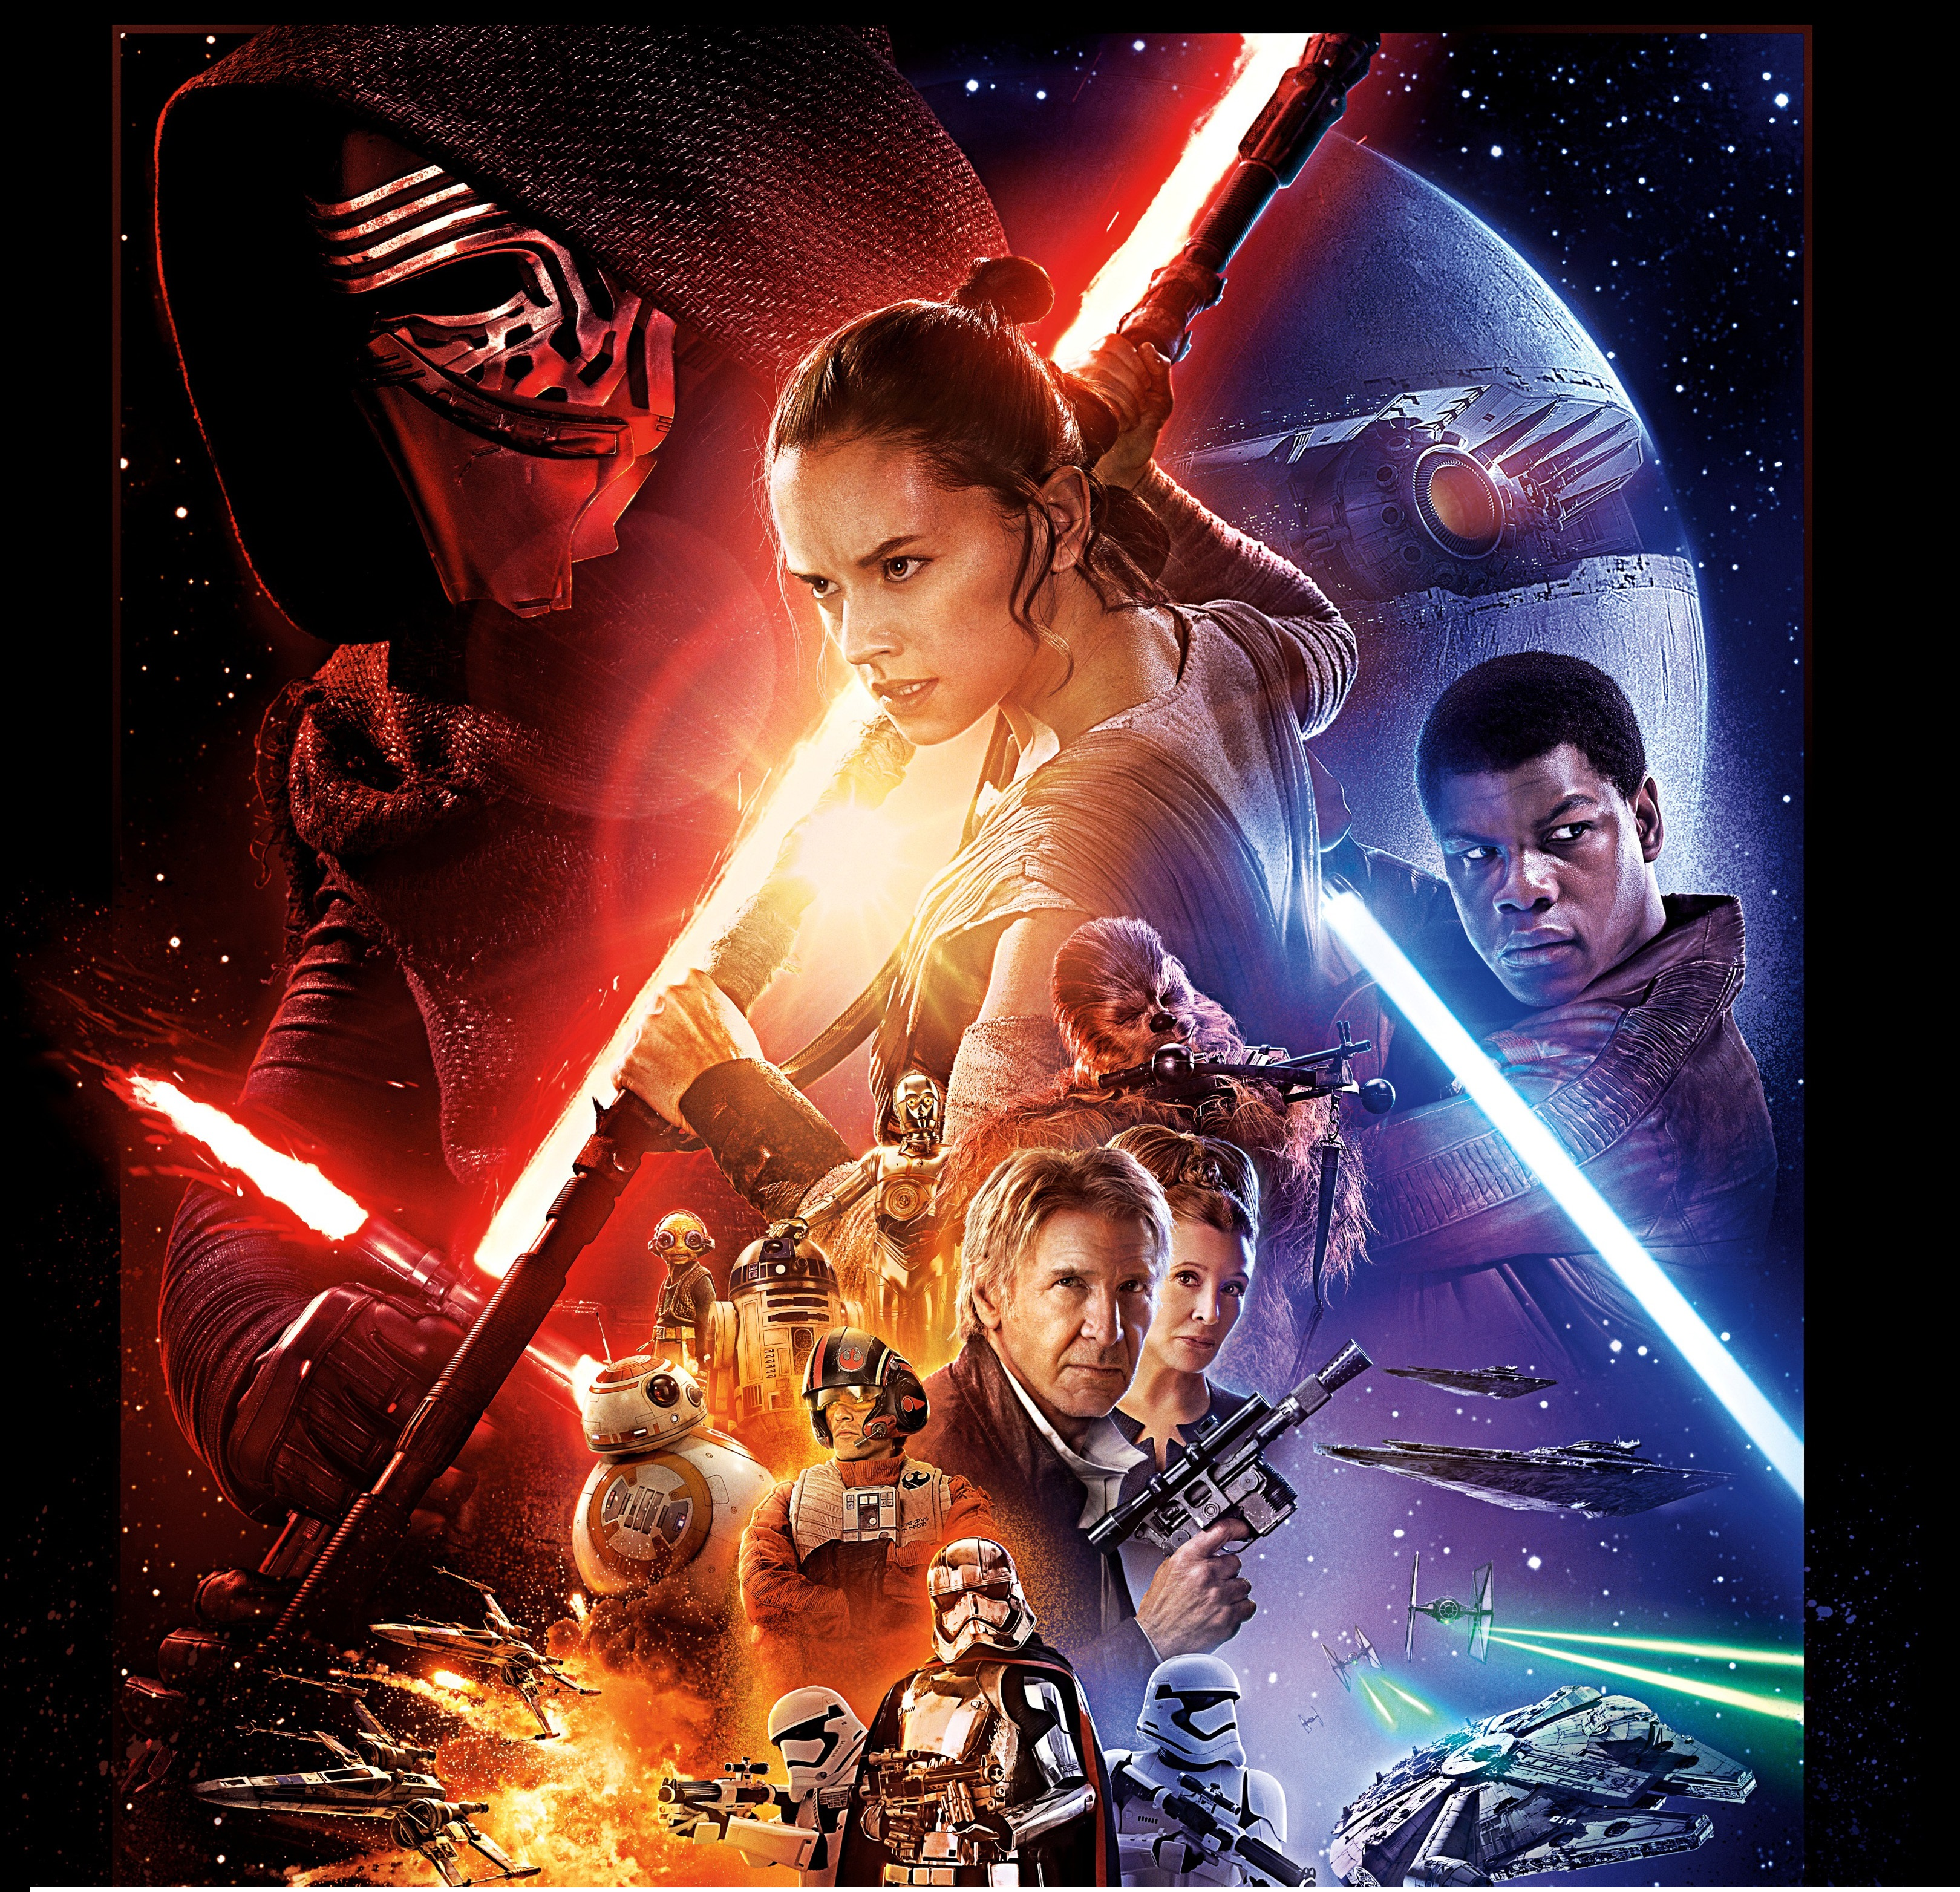 Textless_Force_Awakens_Poster